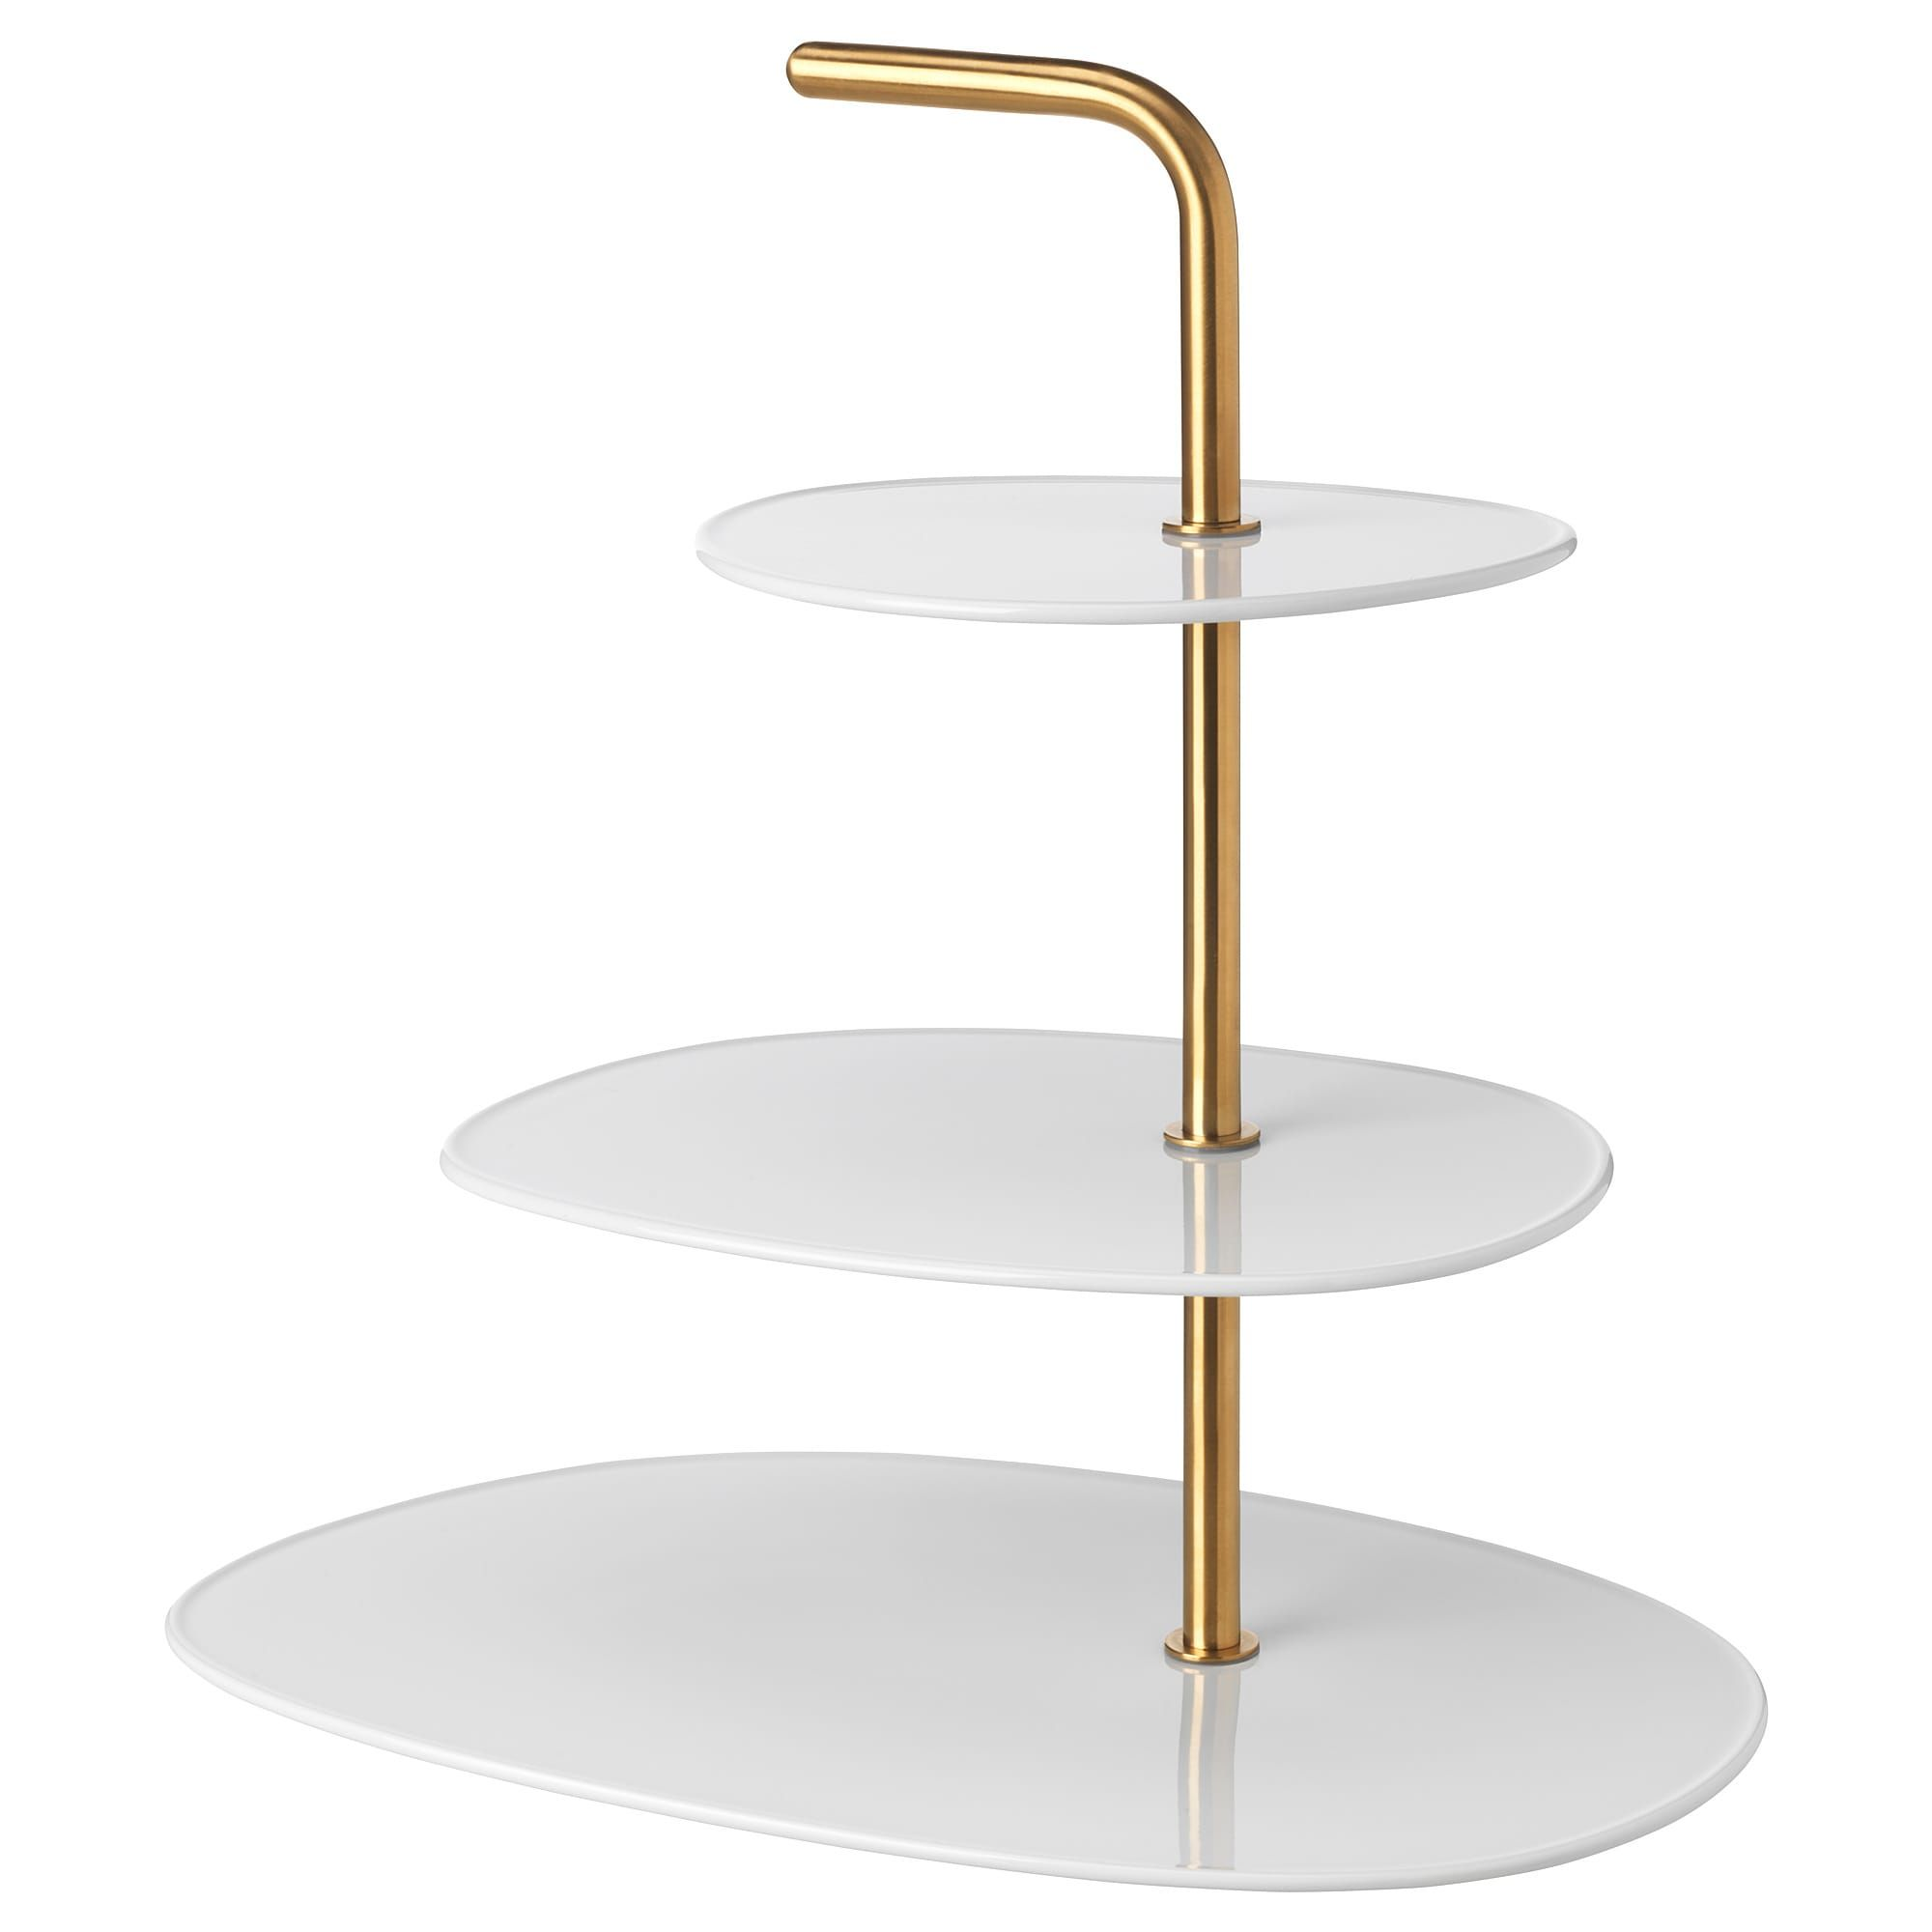 F 214 R 196 Dla Serving Stand 3 Tiers White Brass